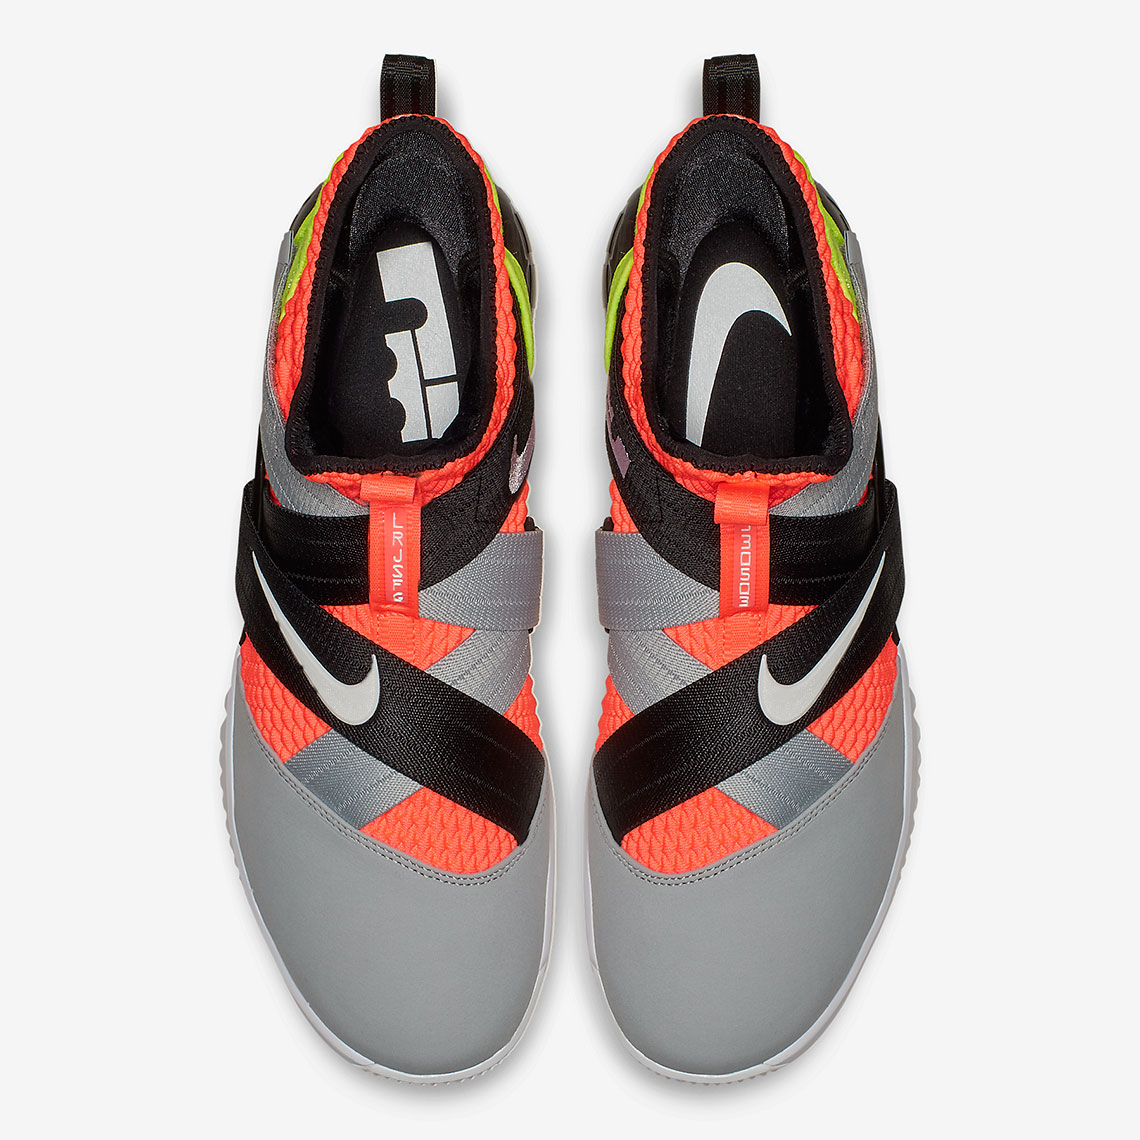 new product 4c447 dcf44 Nike LeBron Soldier 12 SFG AO4054-800 Release | SneakerNews.com